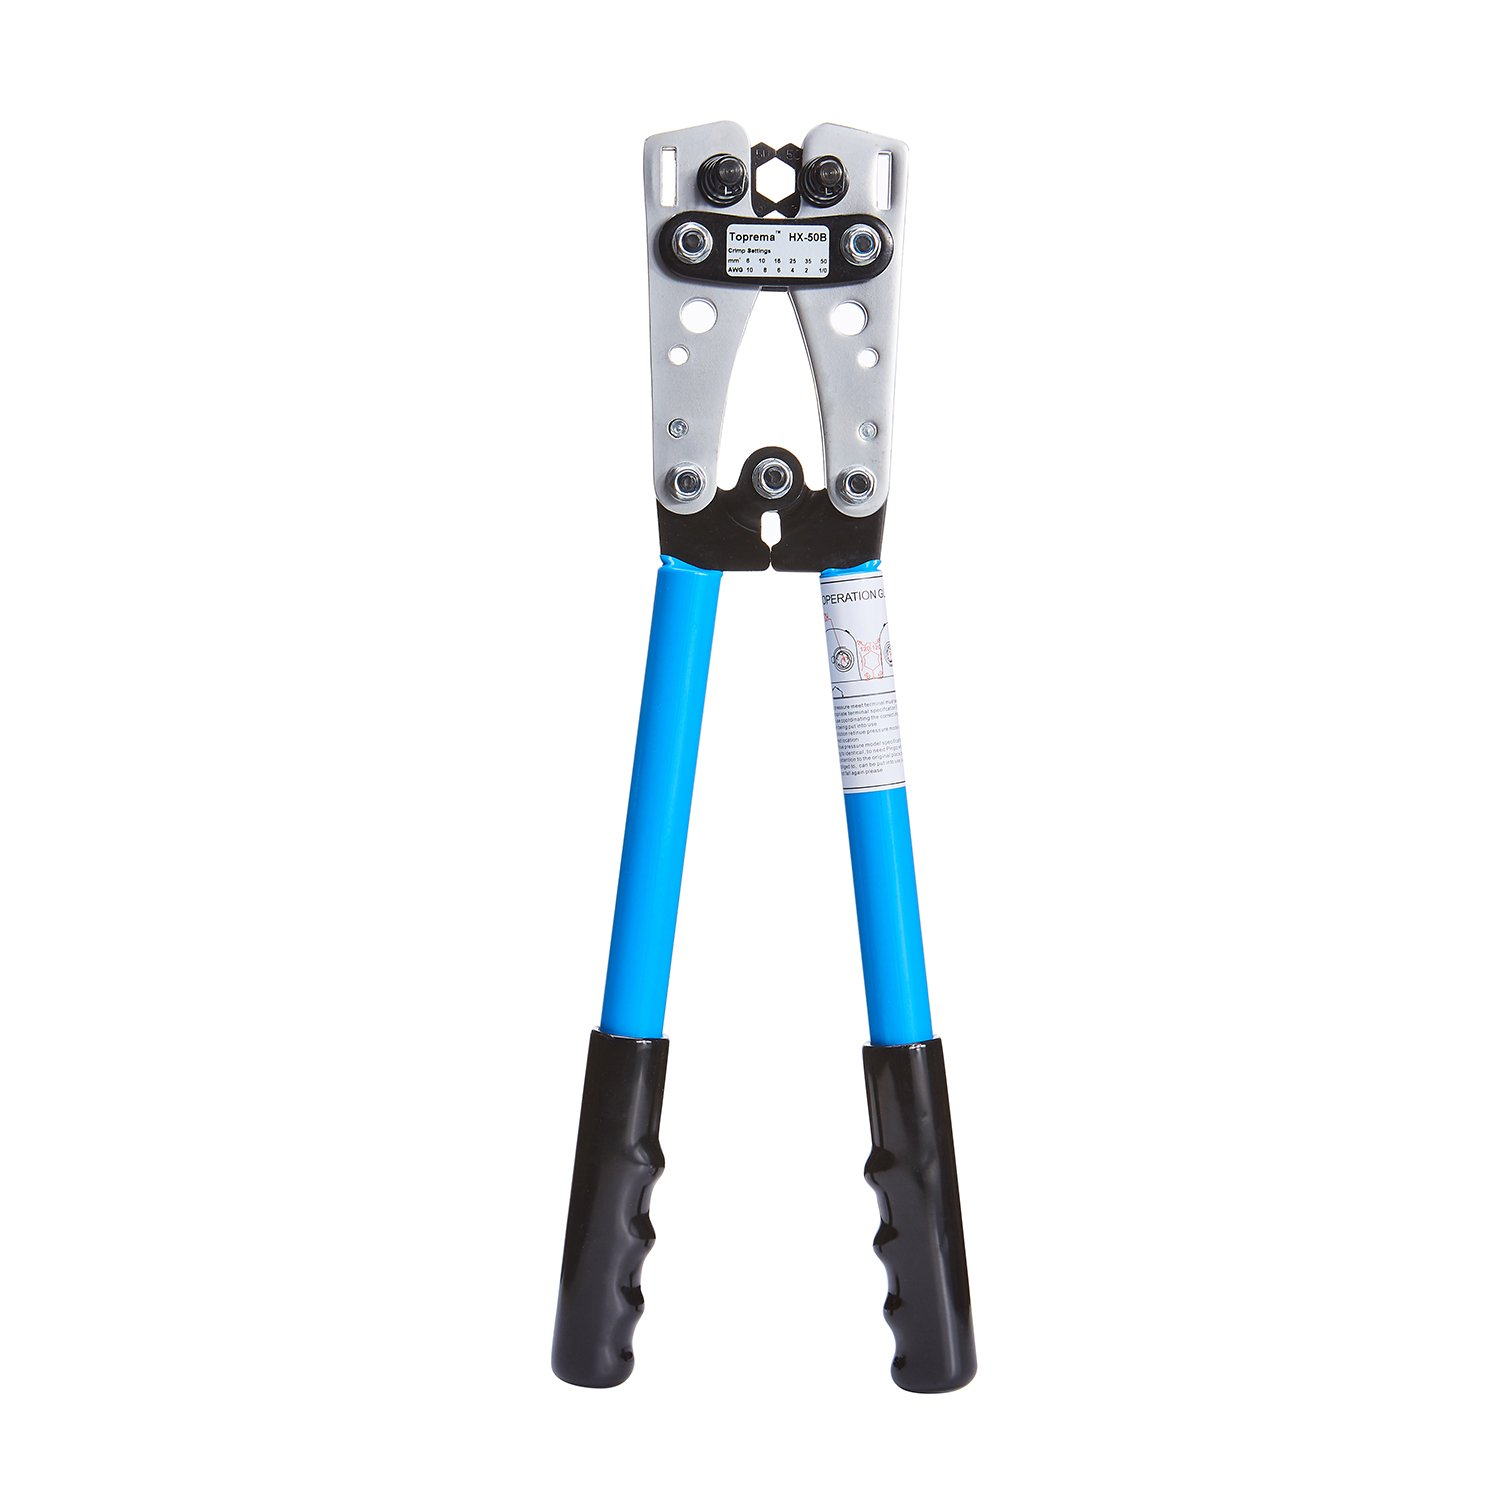 Toprema Wire Terminal Crimping Tool Cable Lug Crimper Electrician Connector Hand Plier (10, 8, 6, 4, 2, 1/0 AWG Settings)